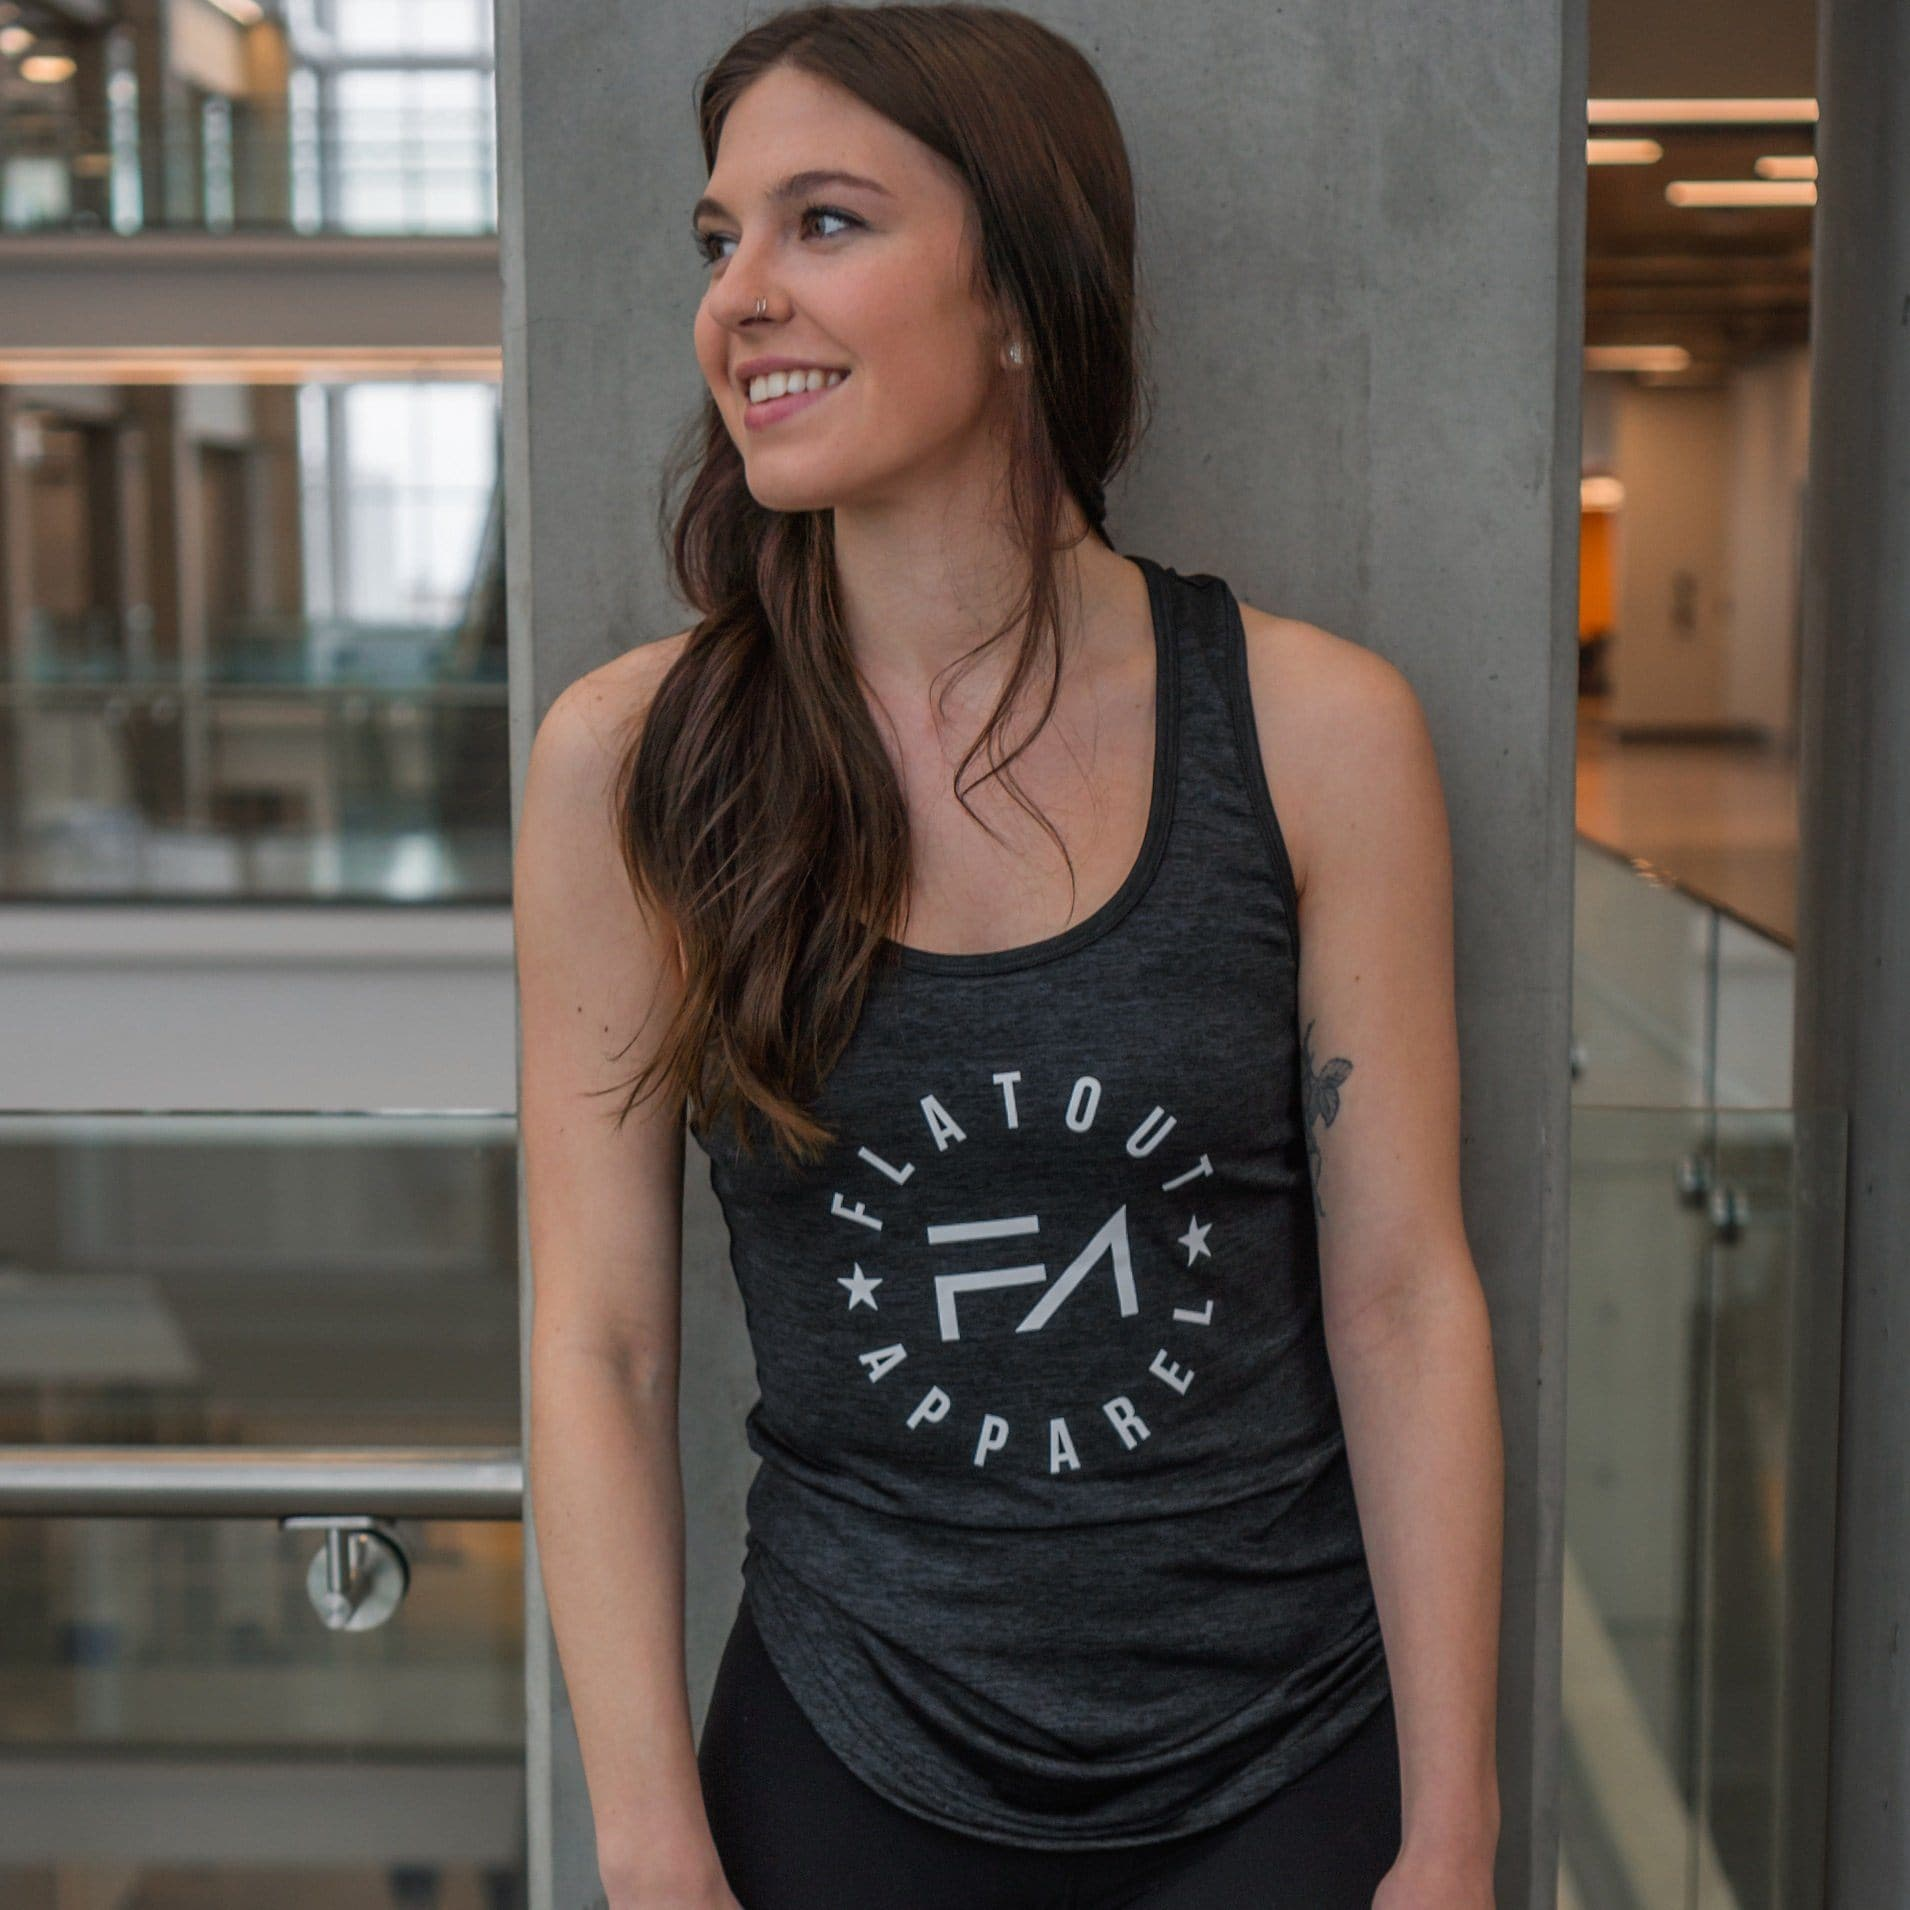 Aero Black Racer Tank - Flatout Apparel Inc